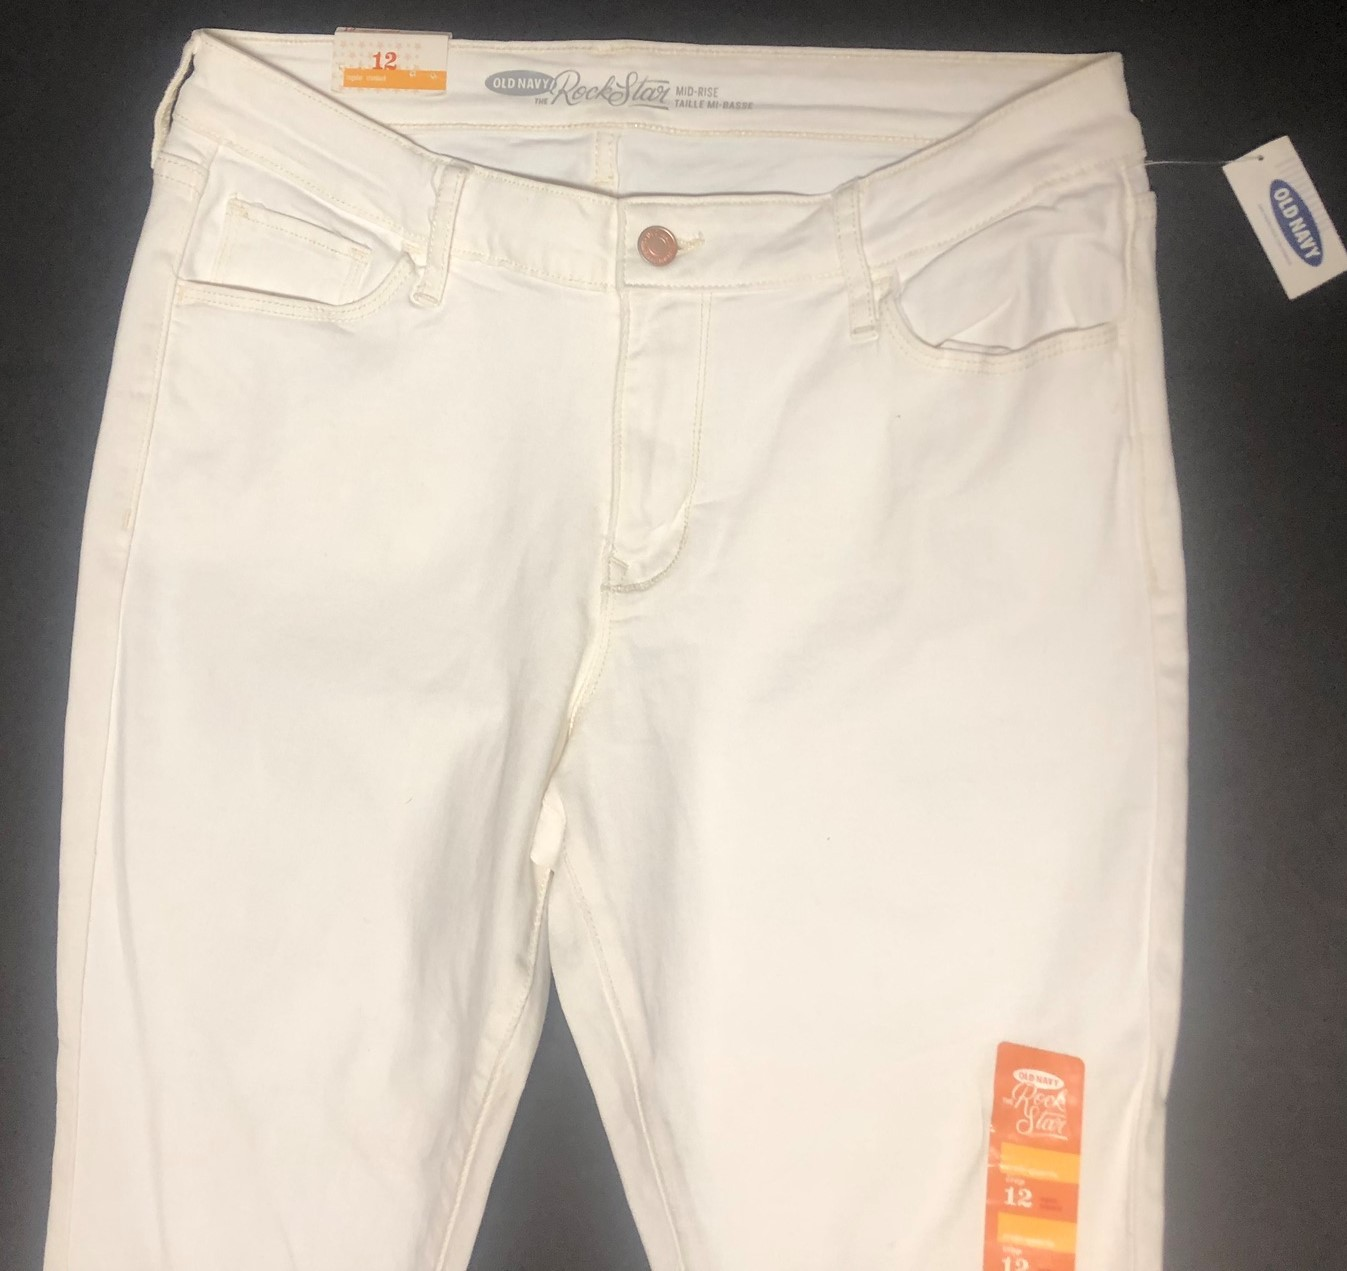 Old Navy Rock Star White Crop Jeans Sz 12 image 3